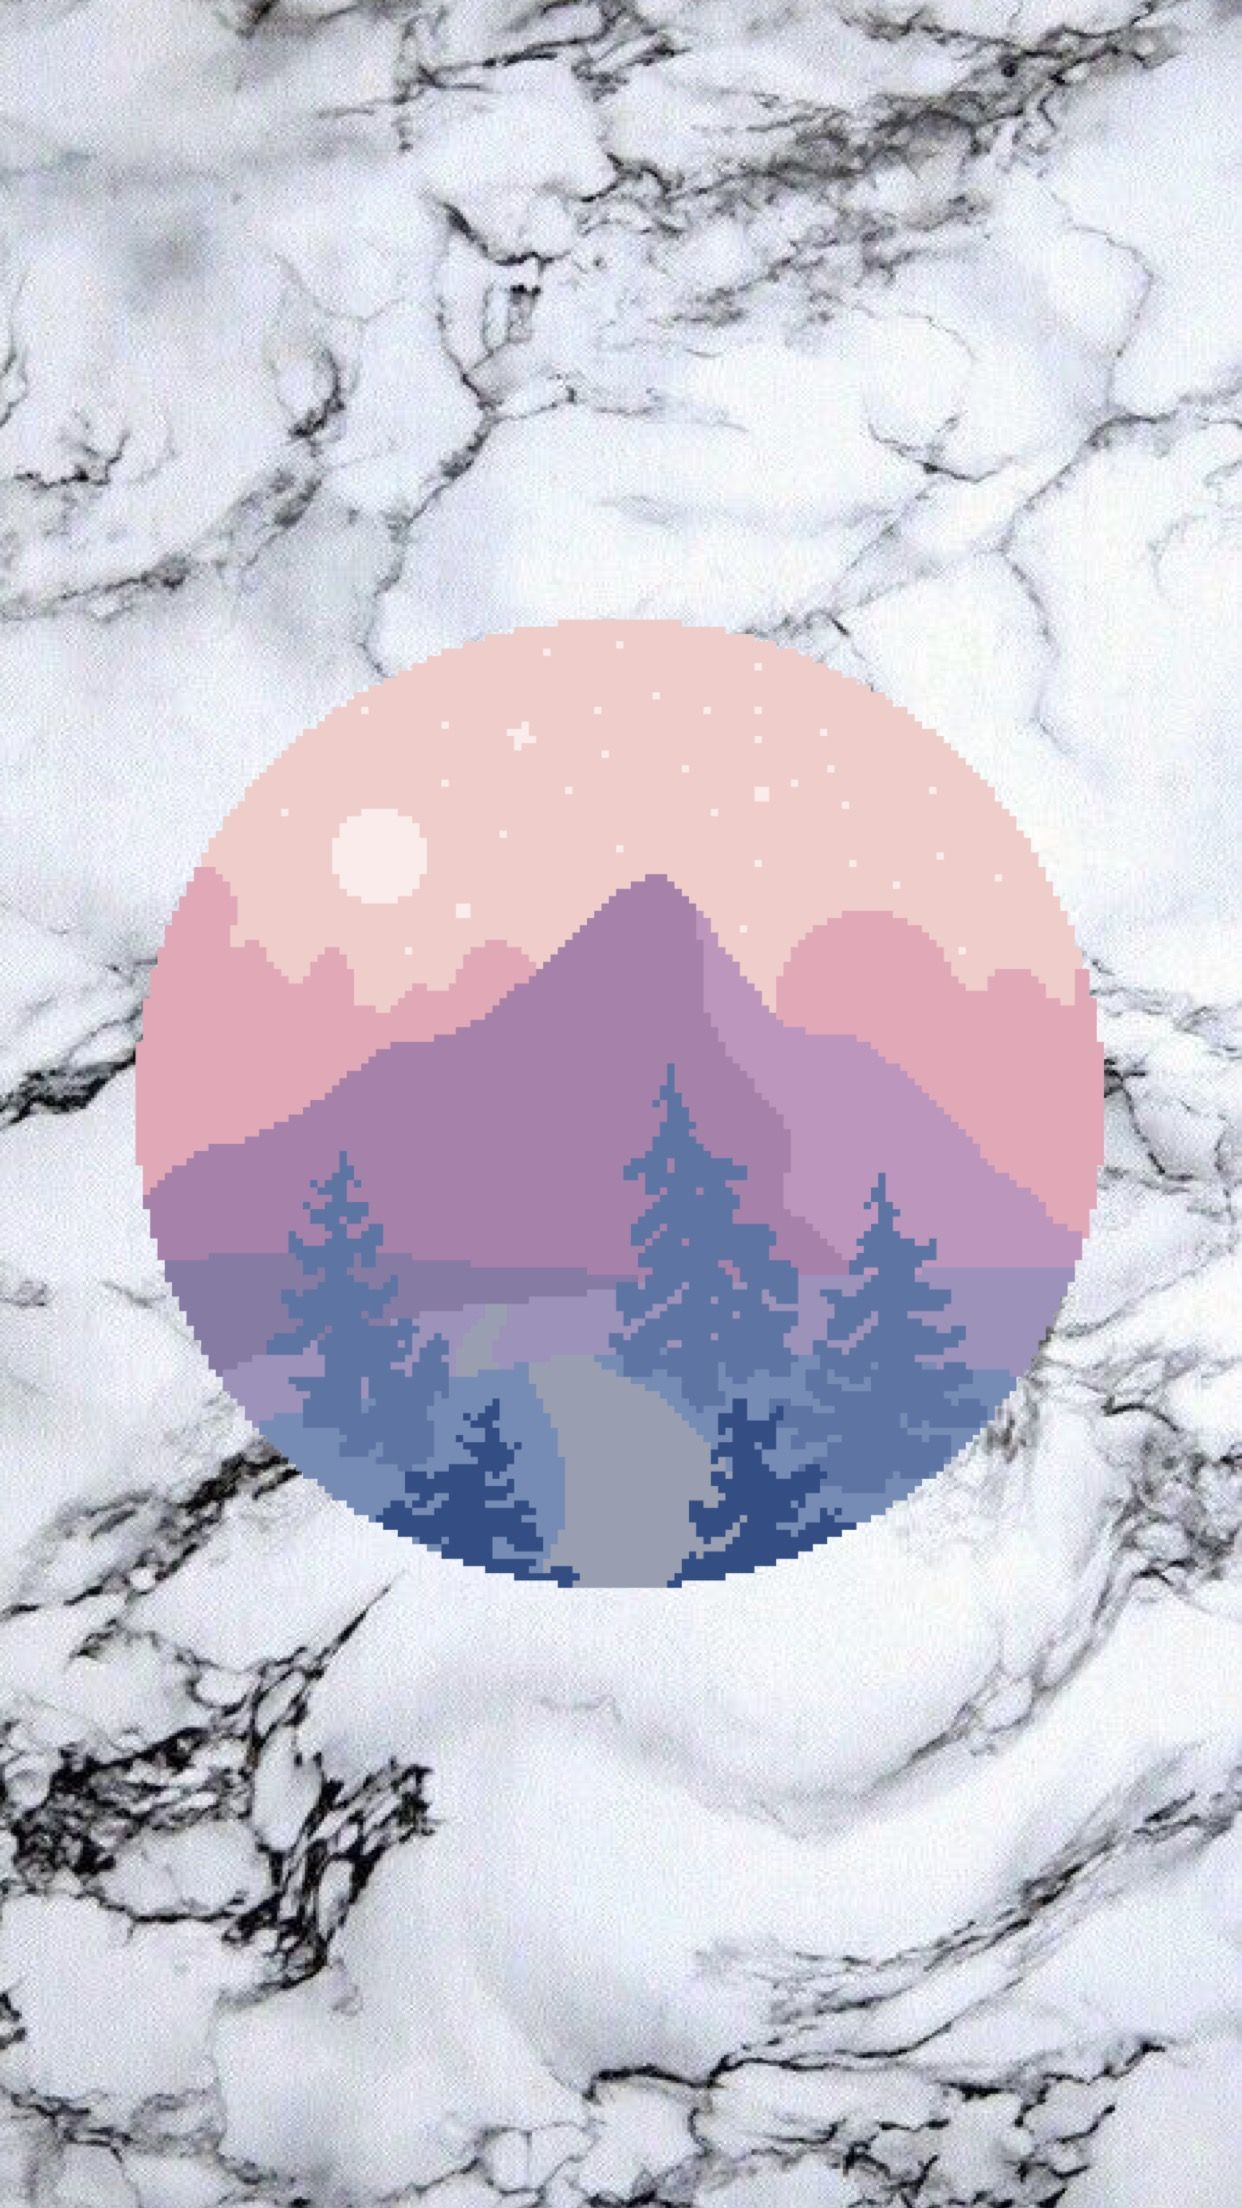 Mountain Aesthetic Wallpapers Top Free Mountain Aesthetic